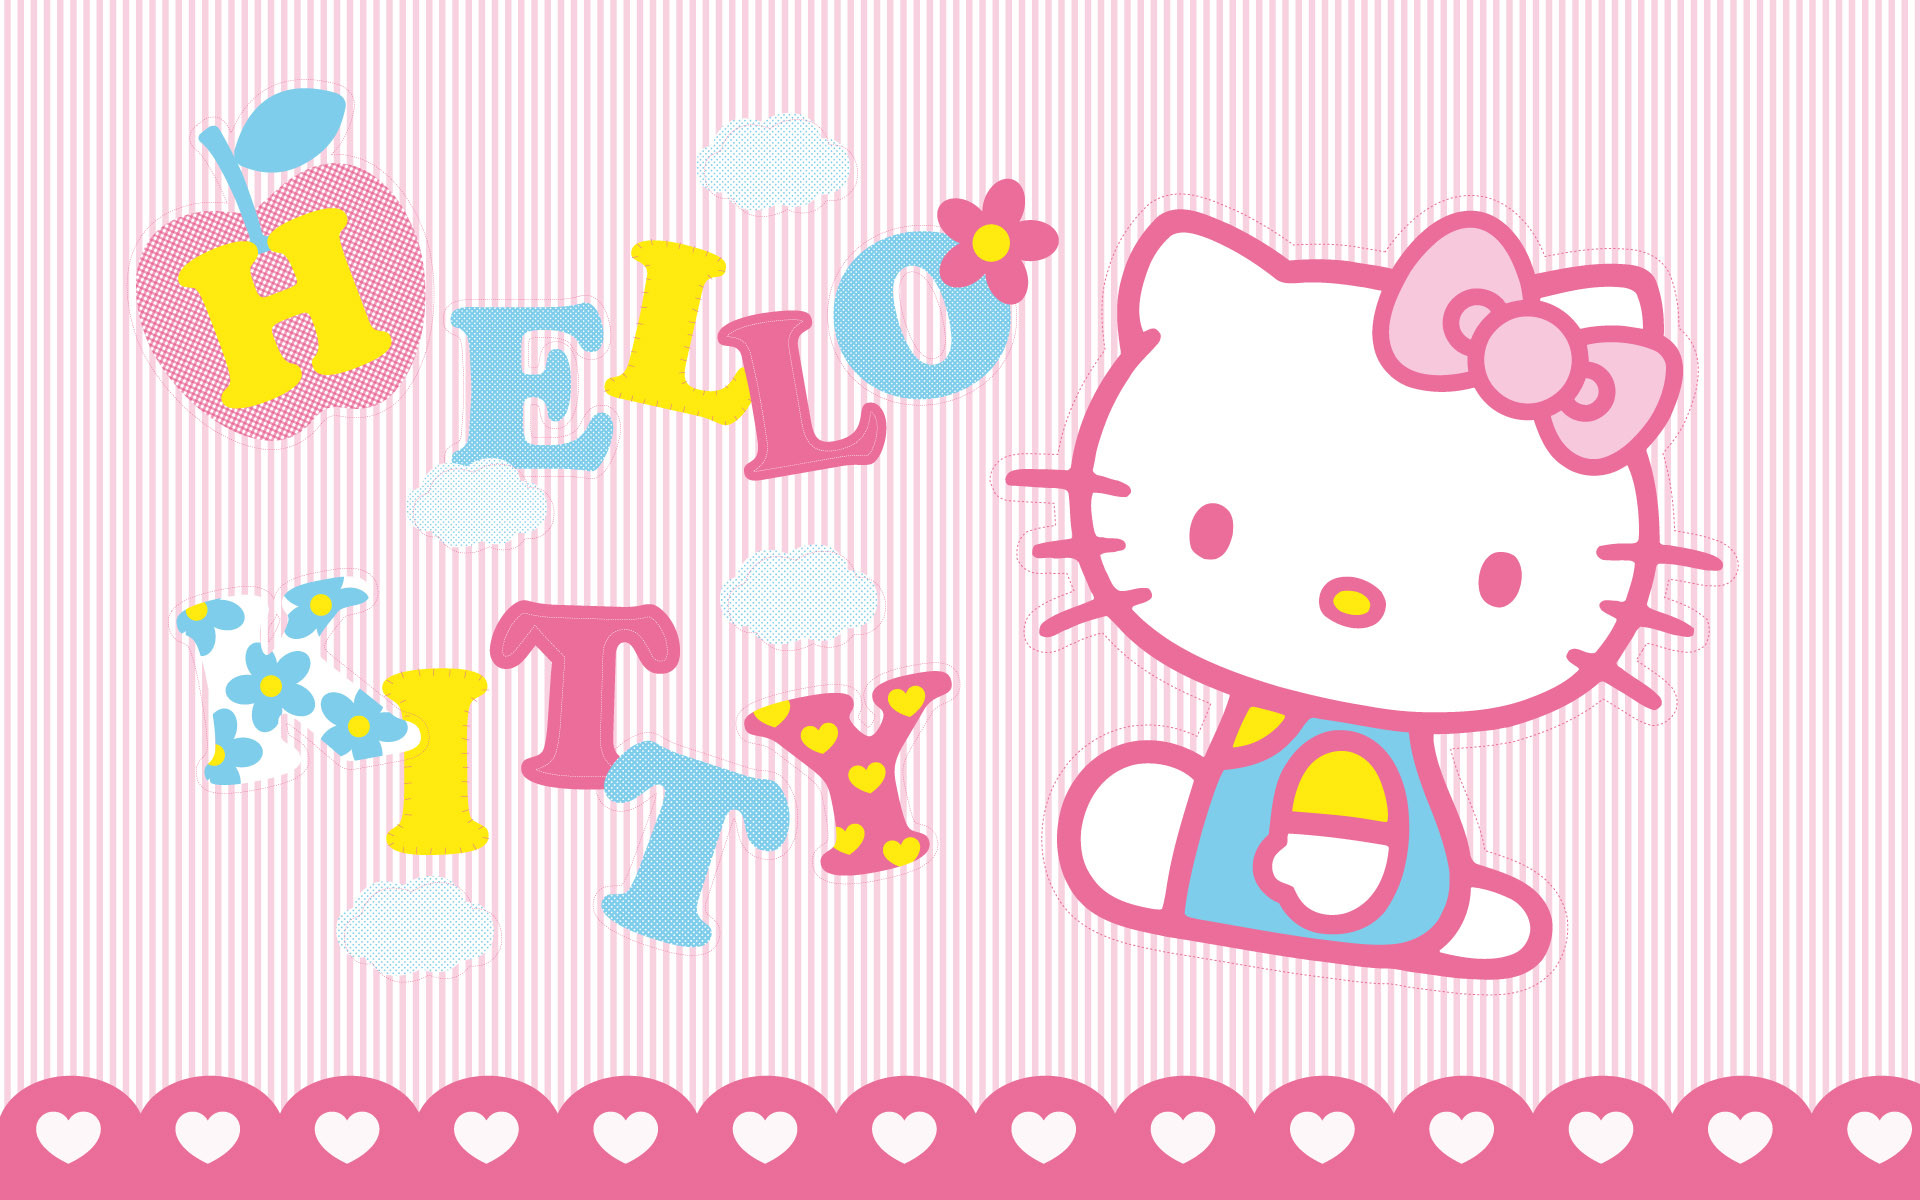 Download Wallpaper Hello Kitty Girly - 620578-new-hello-kitty-wallpapers-and-screensavers-1920x1200  Best Photo Reference_238291.jpg